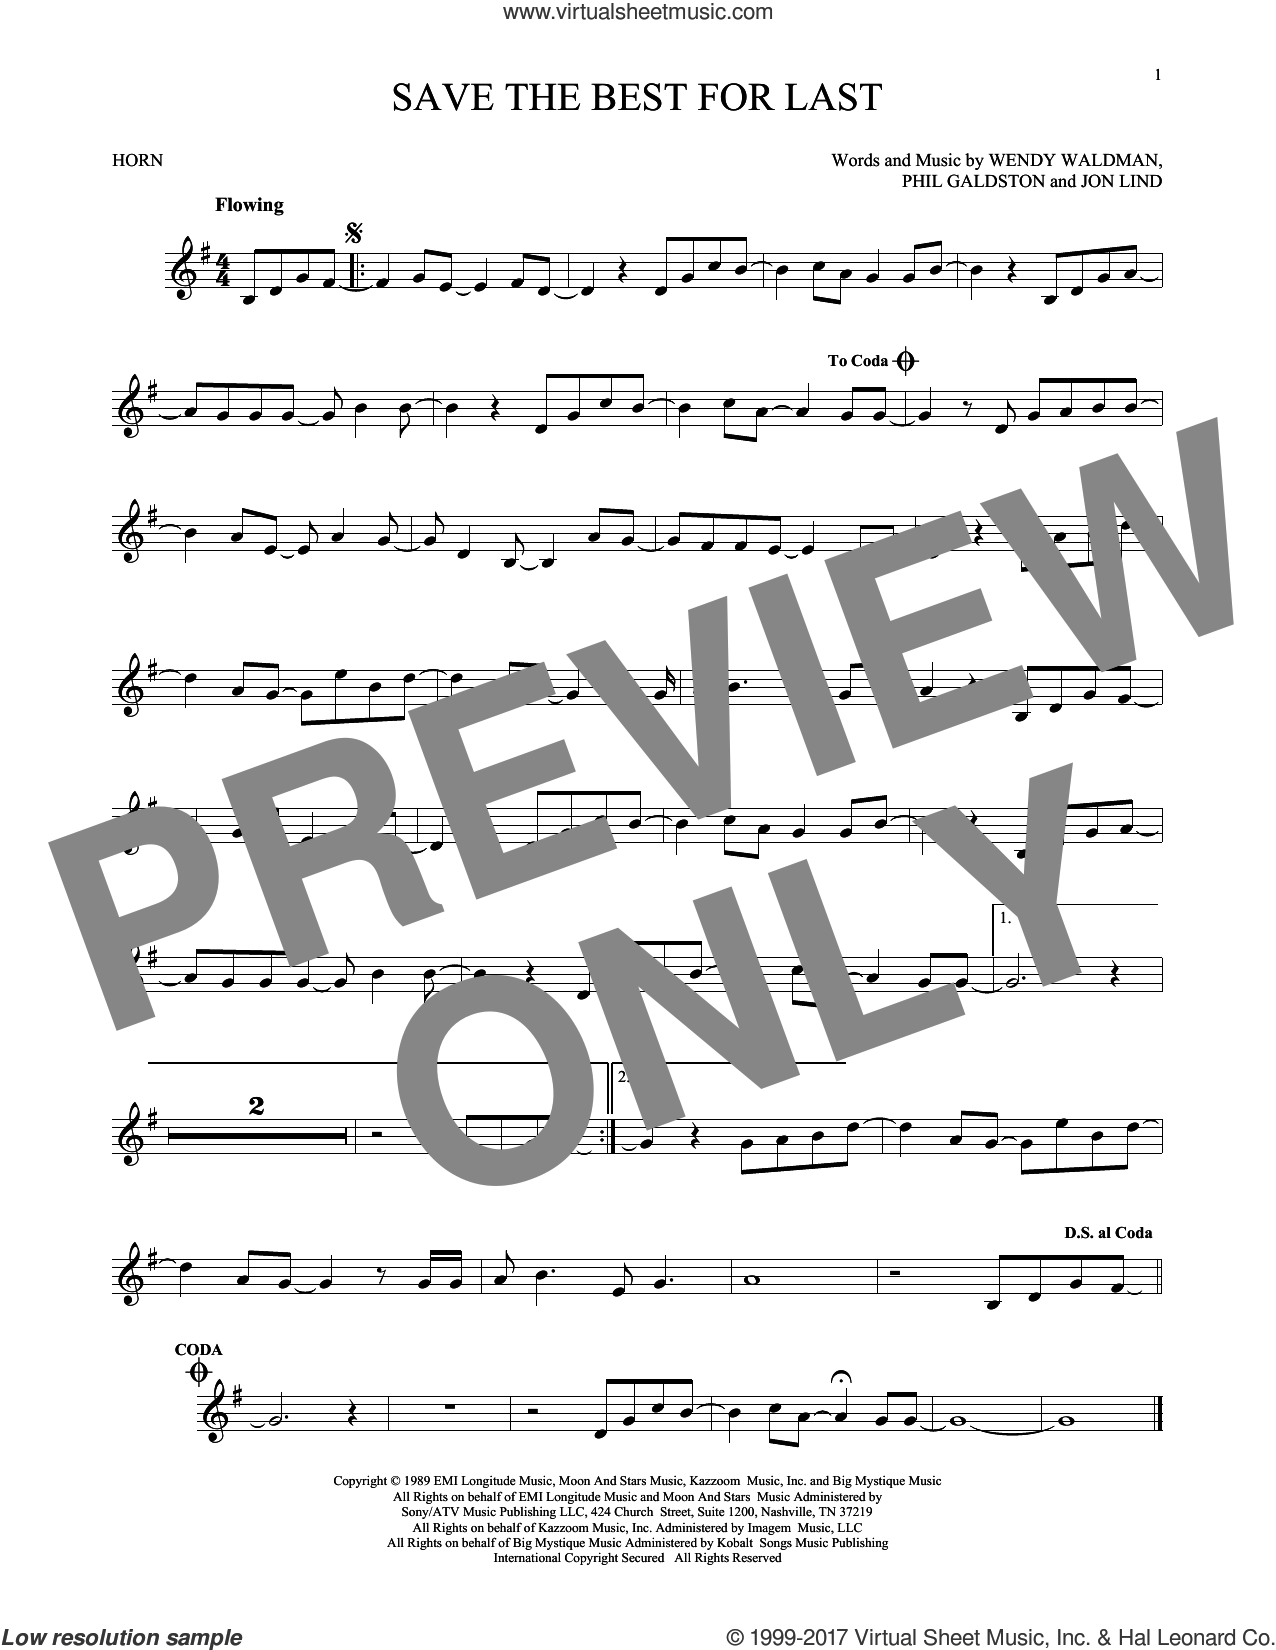 Save The Best For Last sheet music for horn solo by Vanessa Williams, Jon Lind, Phil Galdston and Wendy Waldman, intermediate skill level